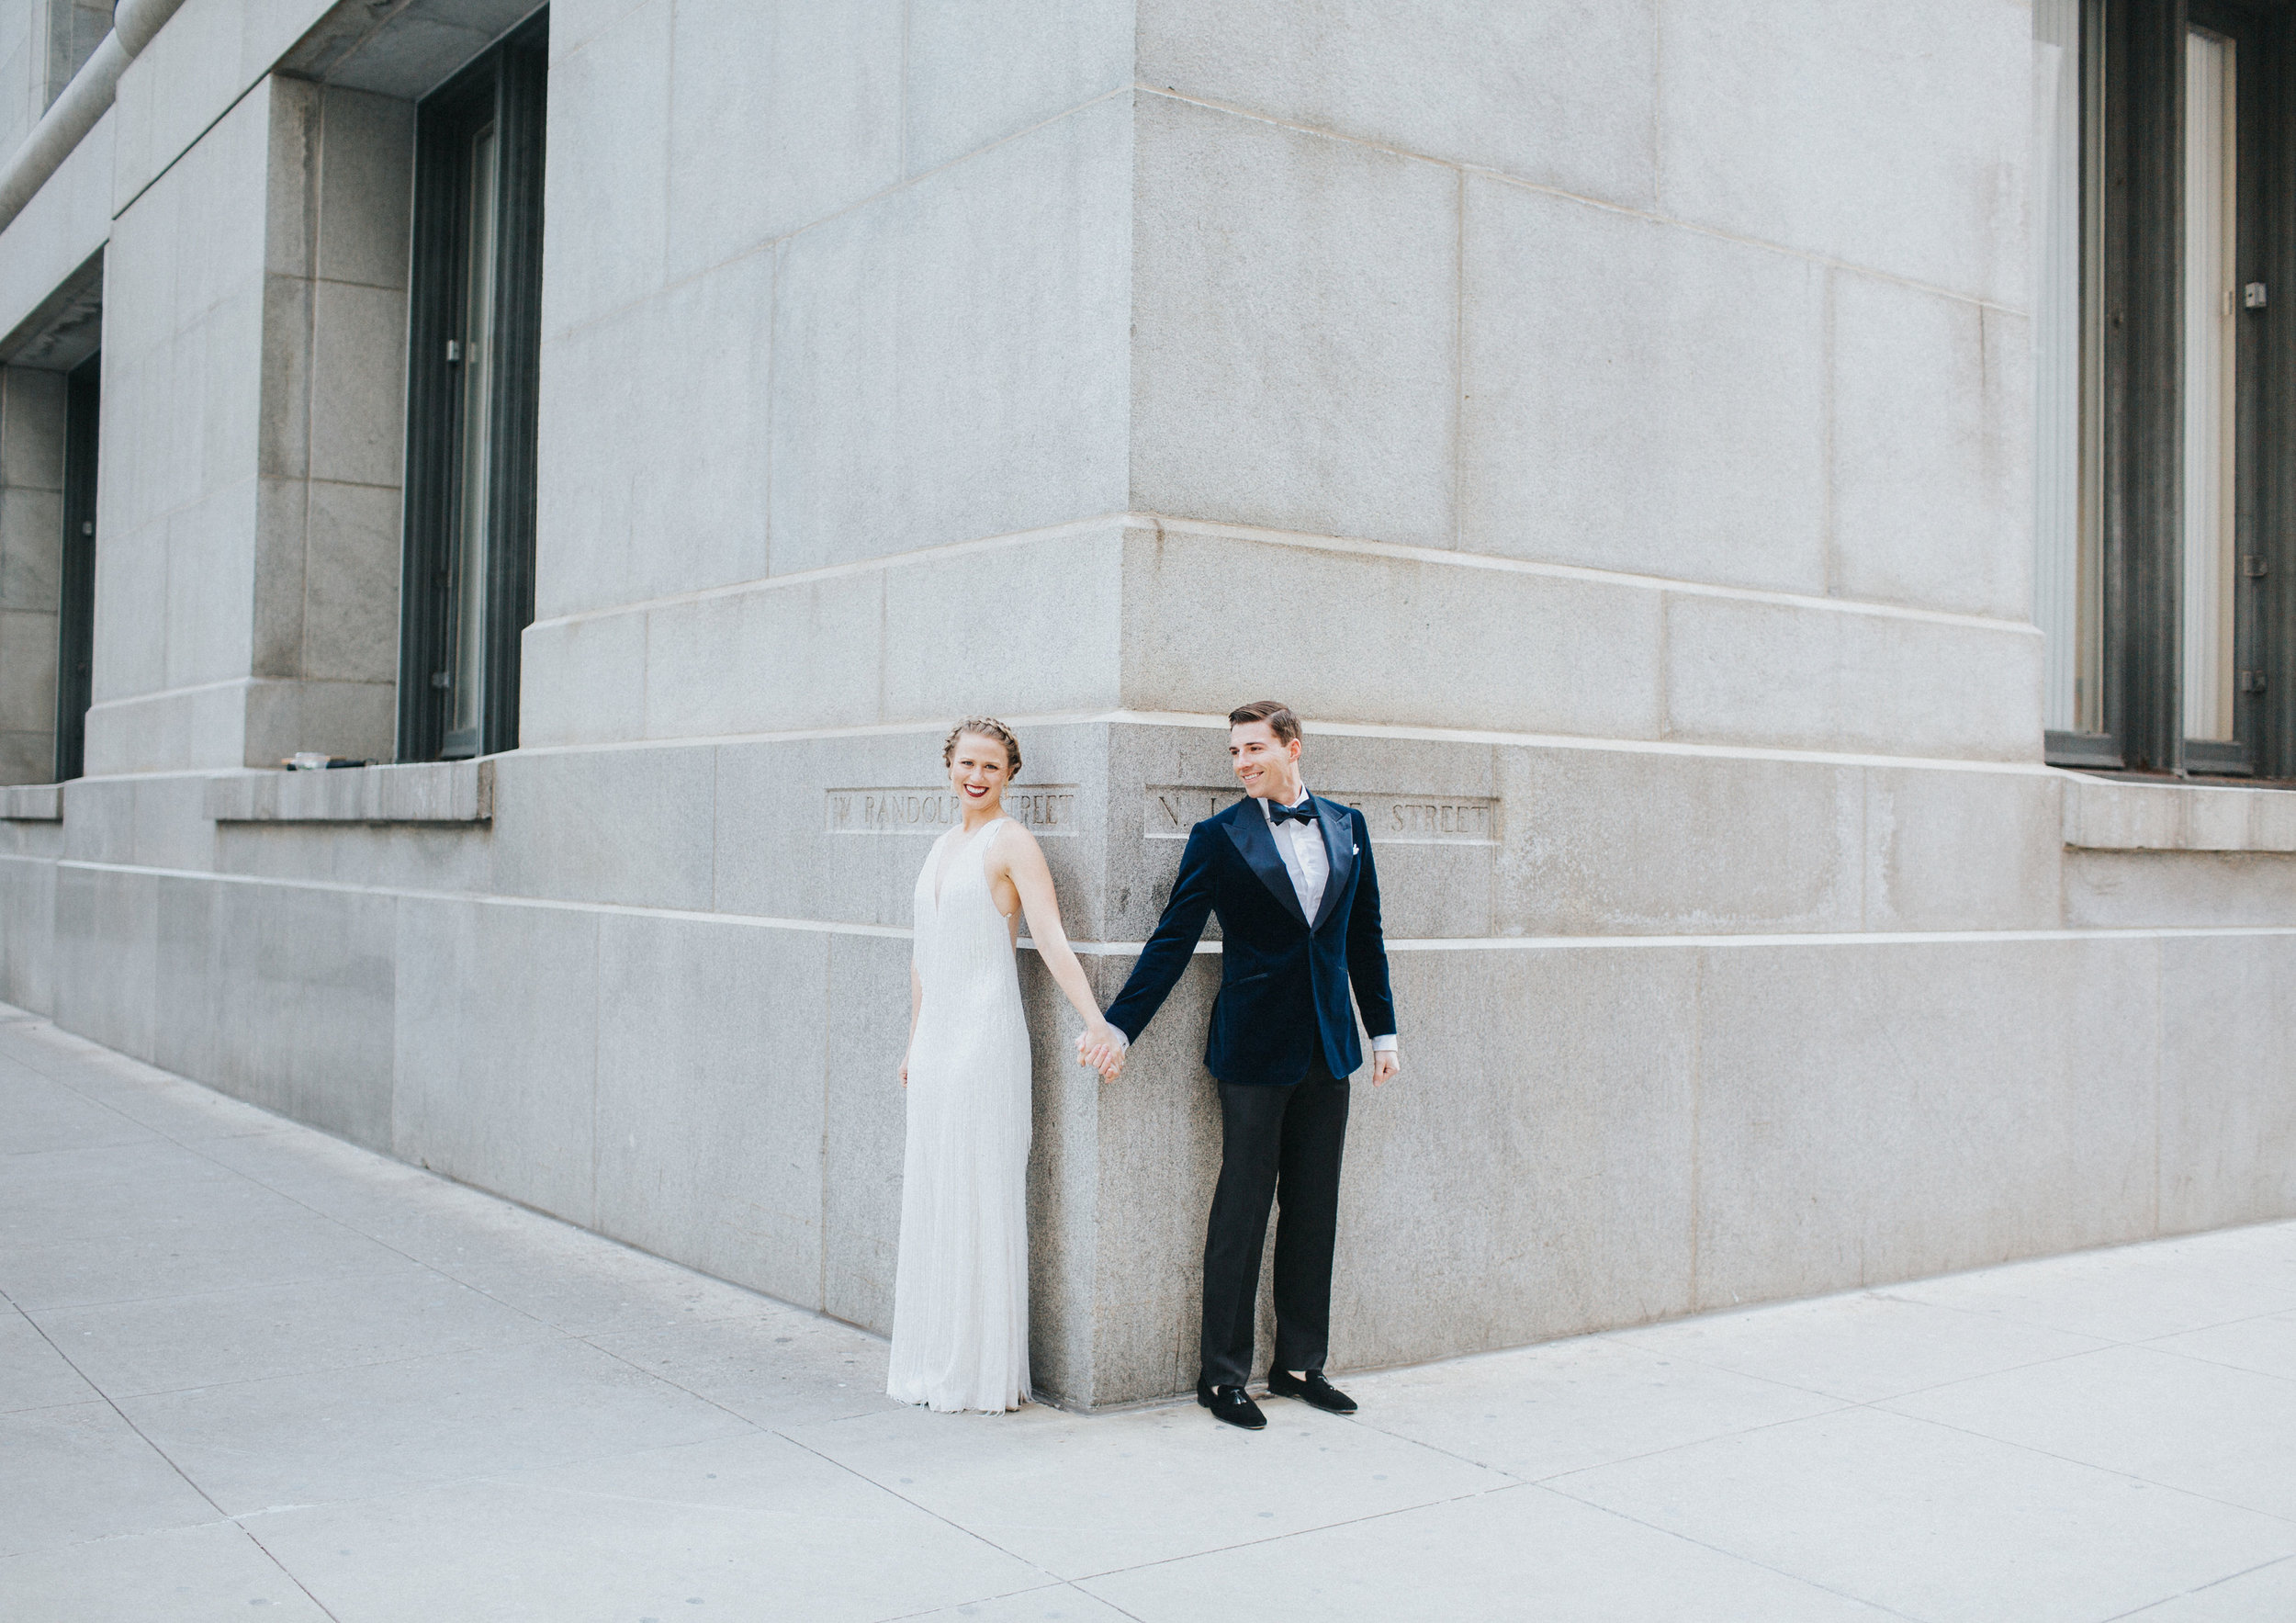 Cozy, intimate Chicago city hall elopement planned by Olive Fine Weddings and captured by Meg Adamik Creative. See more Chicago wedding ideas at chitheewed.com!